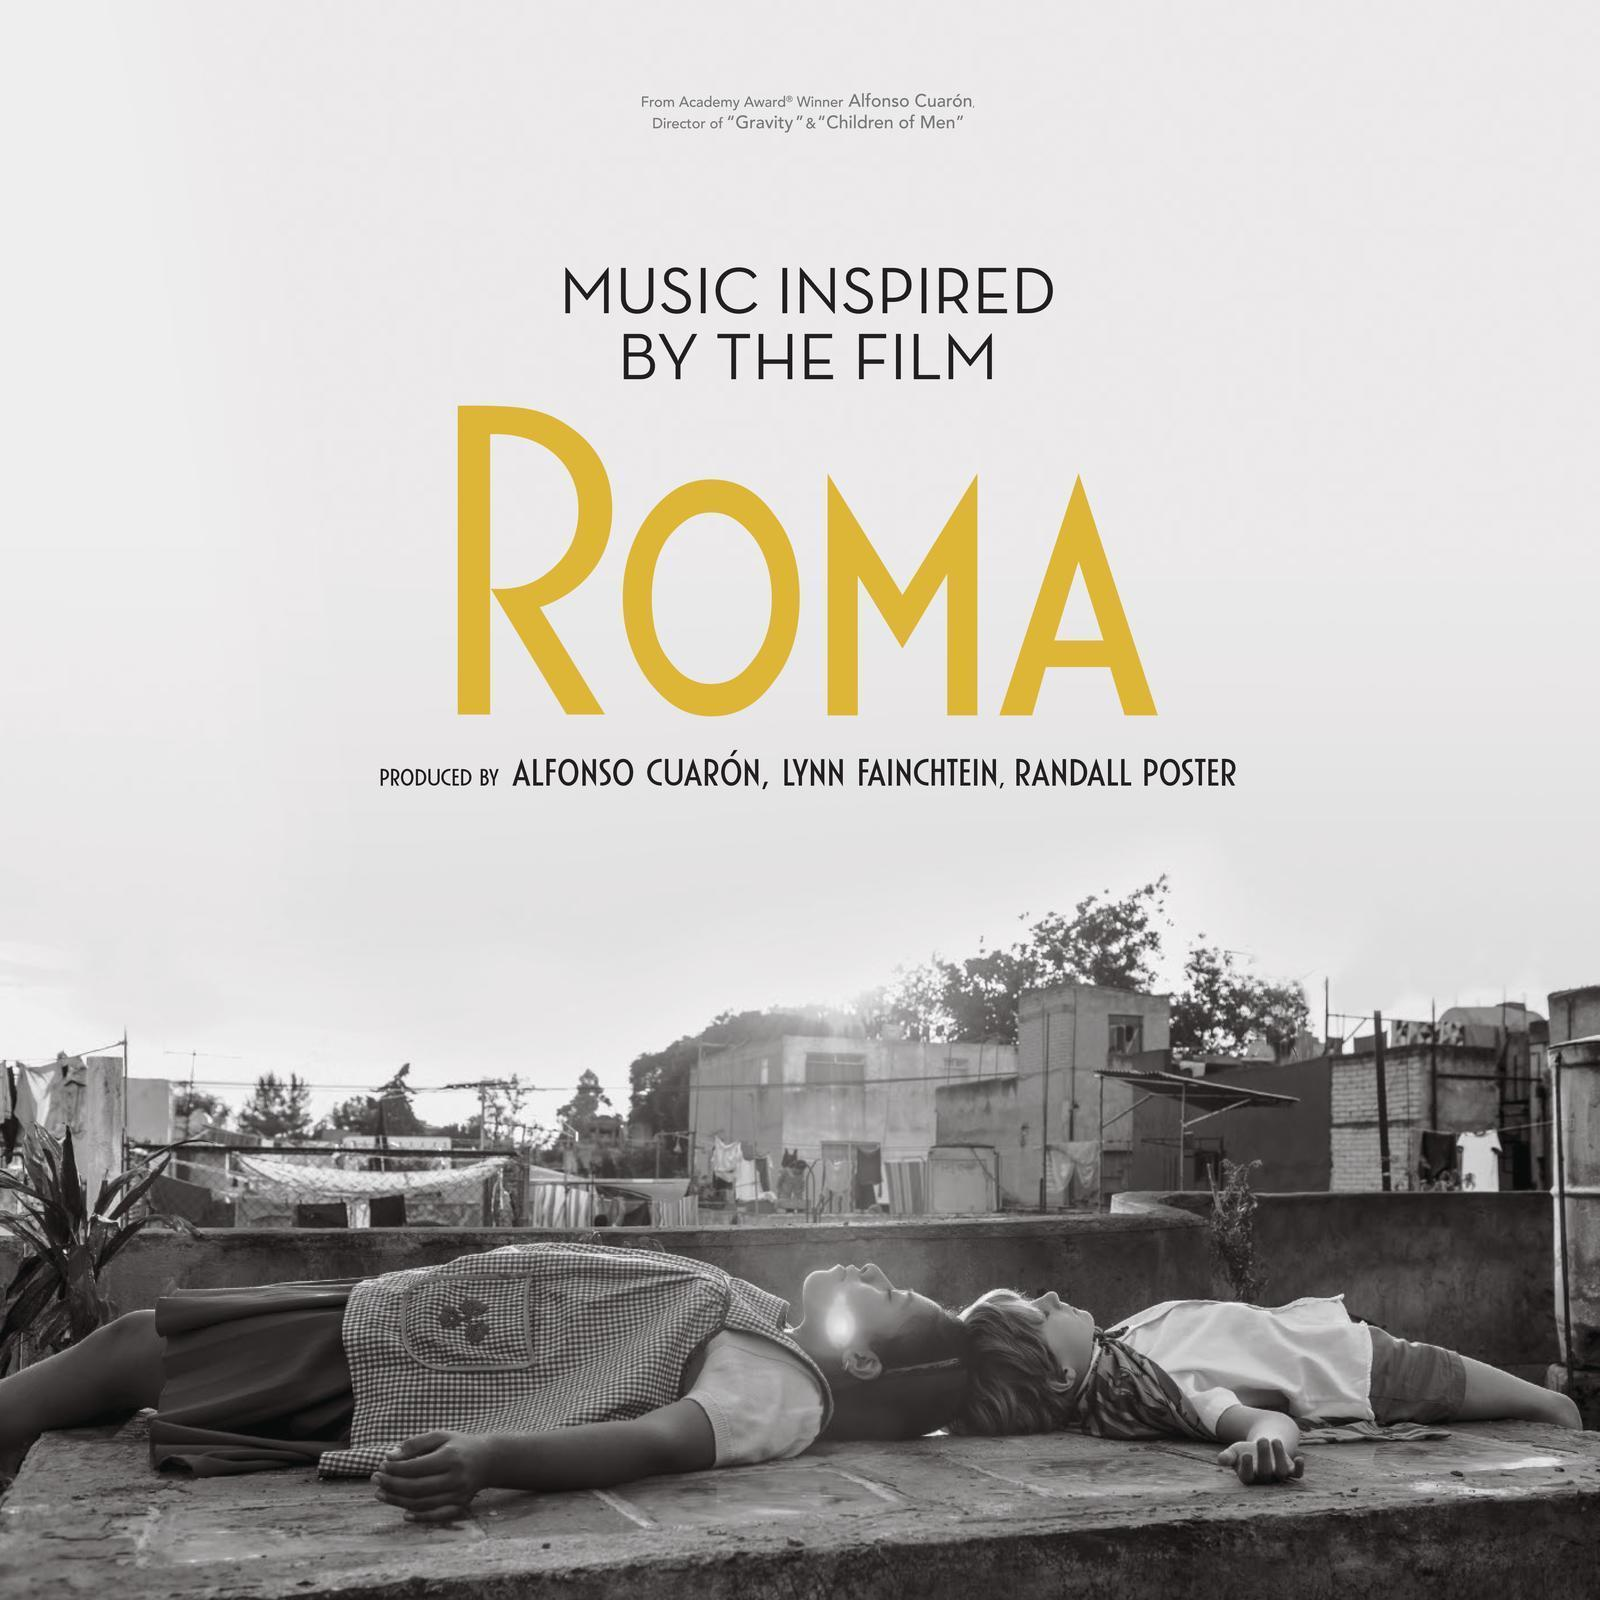 Alfonso Cuarón Offers a Powerful Collection of 'Music